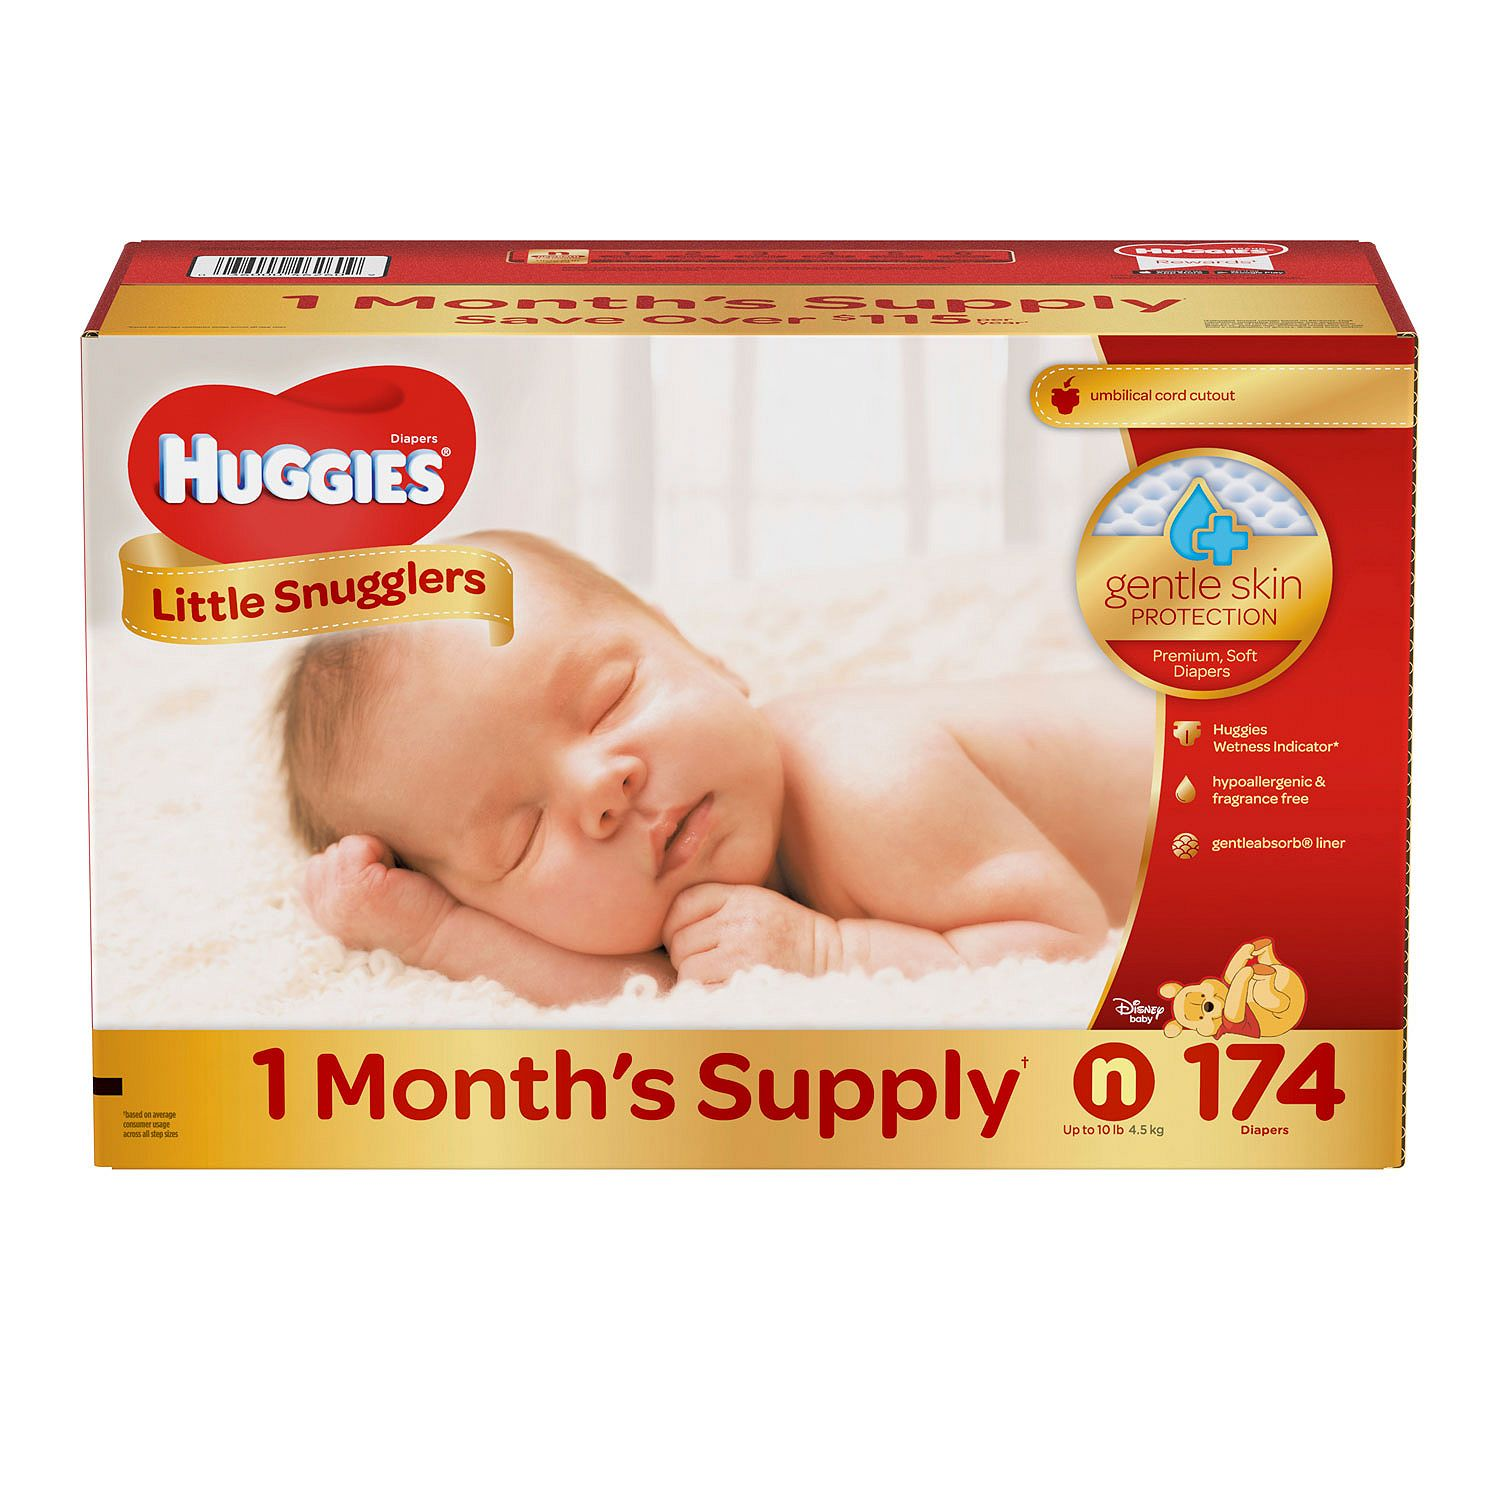 Huggies Little Snugglers Diapers Size Newborn 174 ct. ( Weight up to 10 lbs.) Bulk Qty, Free Shipping... by Branded Diapers